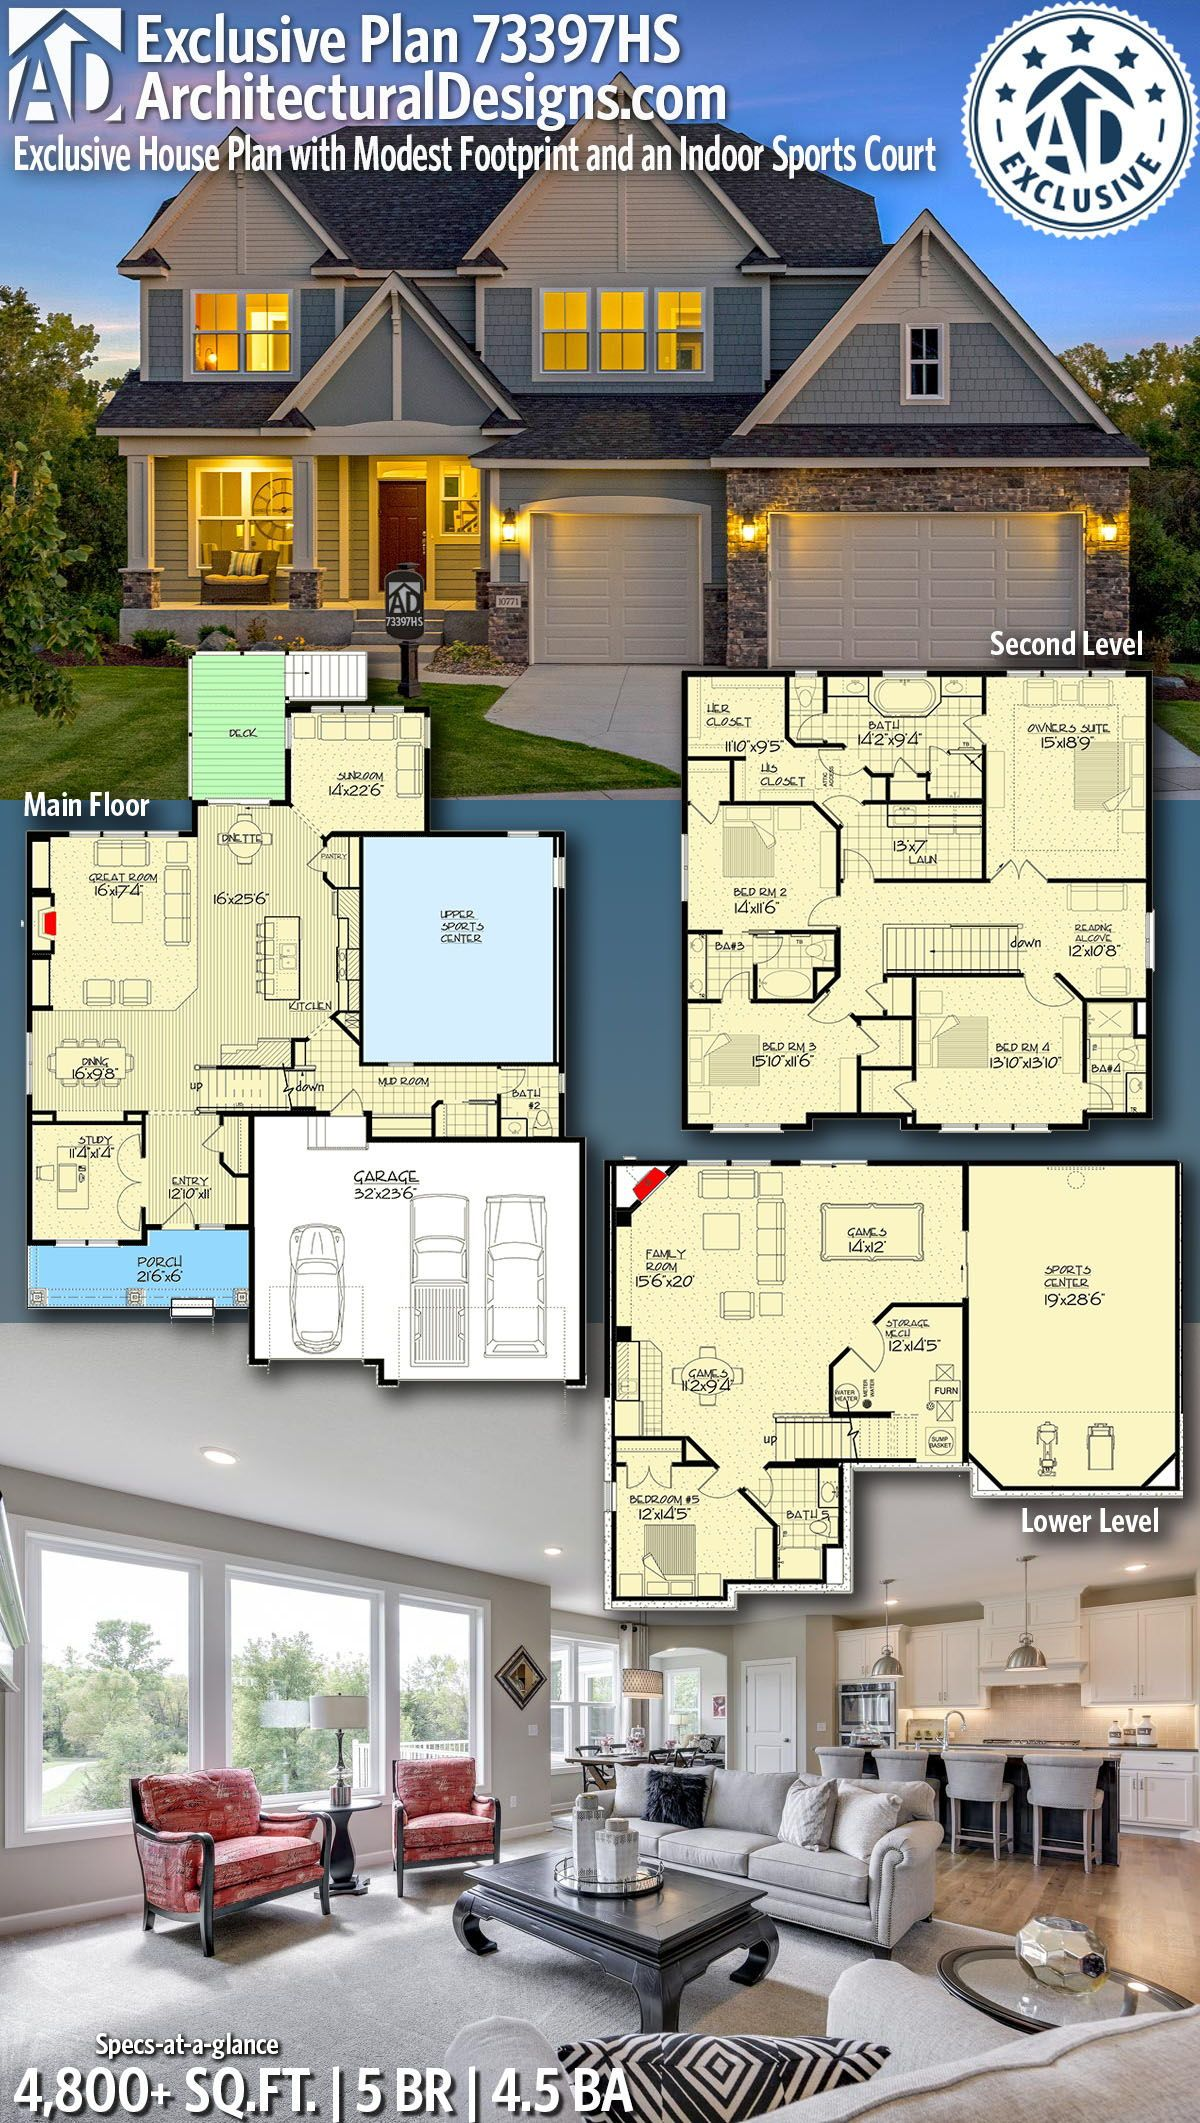 Architectural Designs Exclusive New American Home Plan 73397hs Gives You 5 Bedrooms 4 5 Baths And 4 Exclusive House Plan Architecture House Dream House Plans